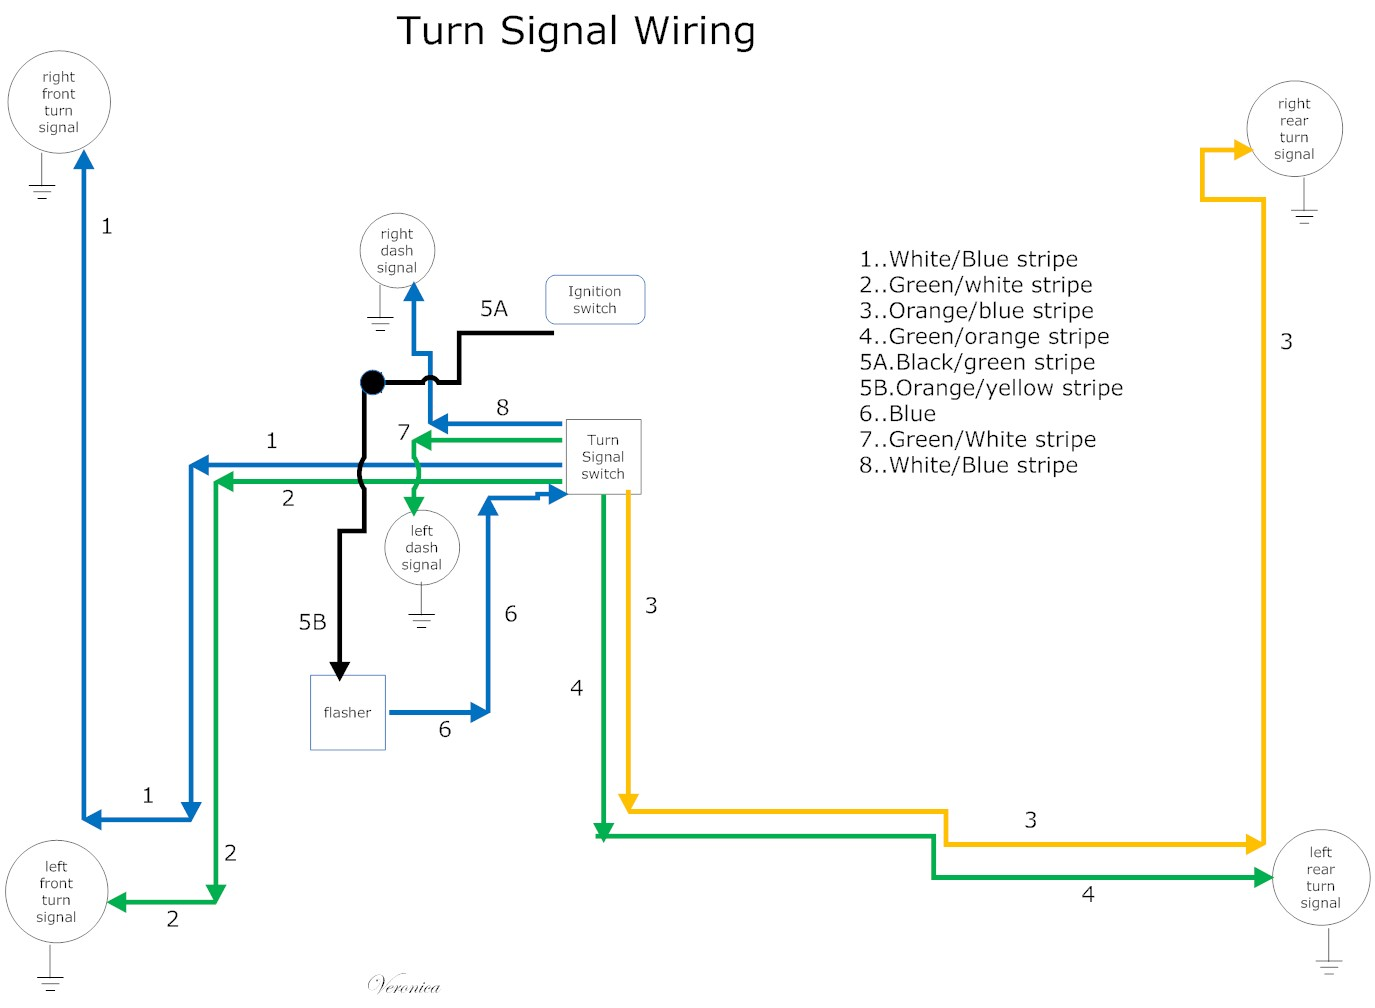 69 Mustang Turn Signal Wiring Diagram